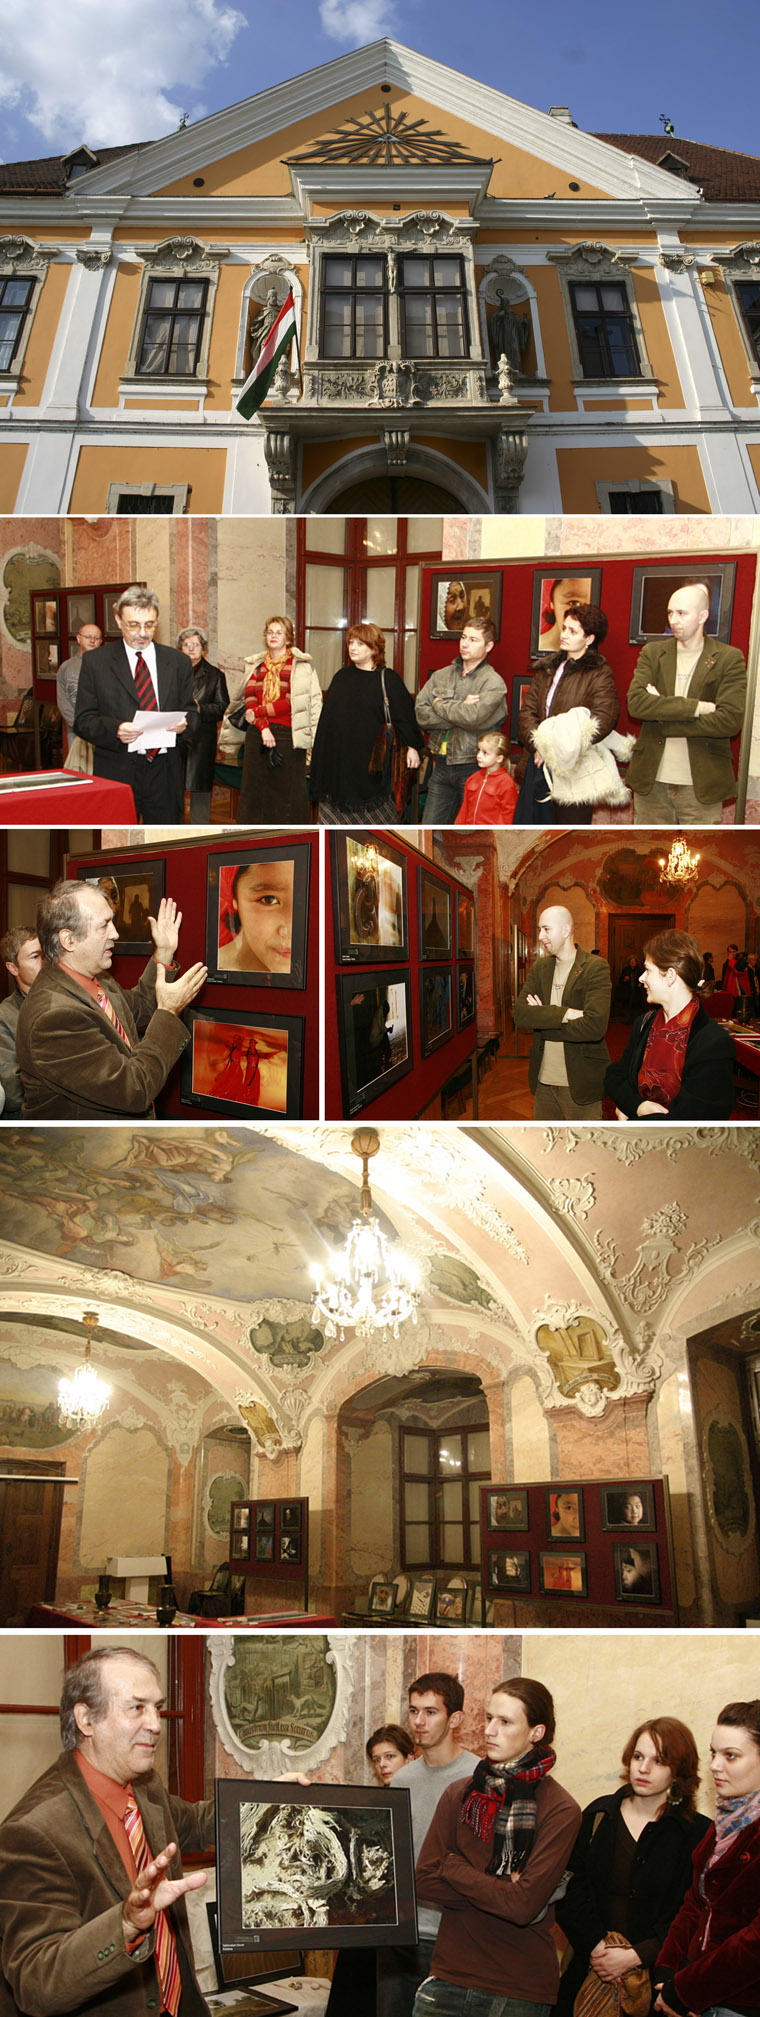 eifert-exhibition-opening-xantus-china-silkroad